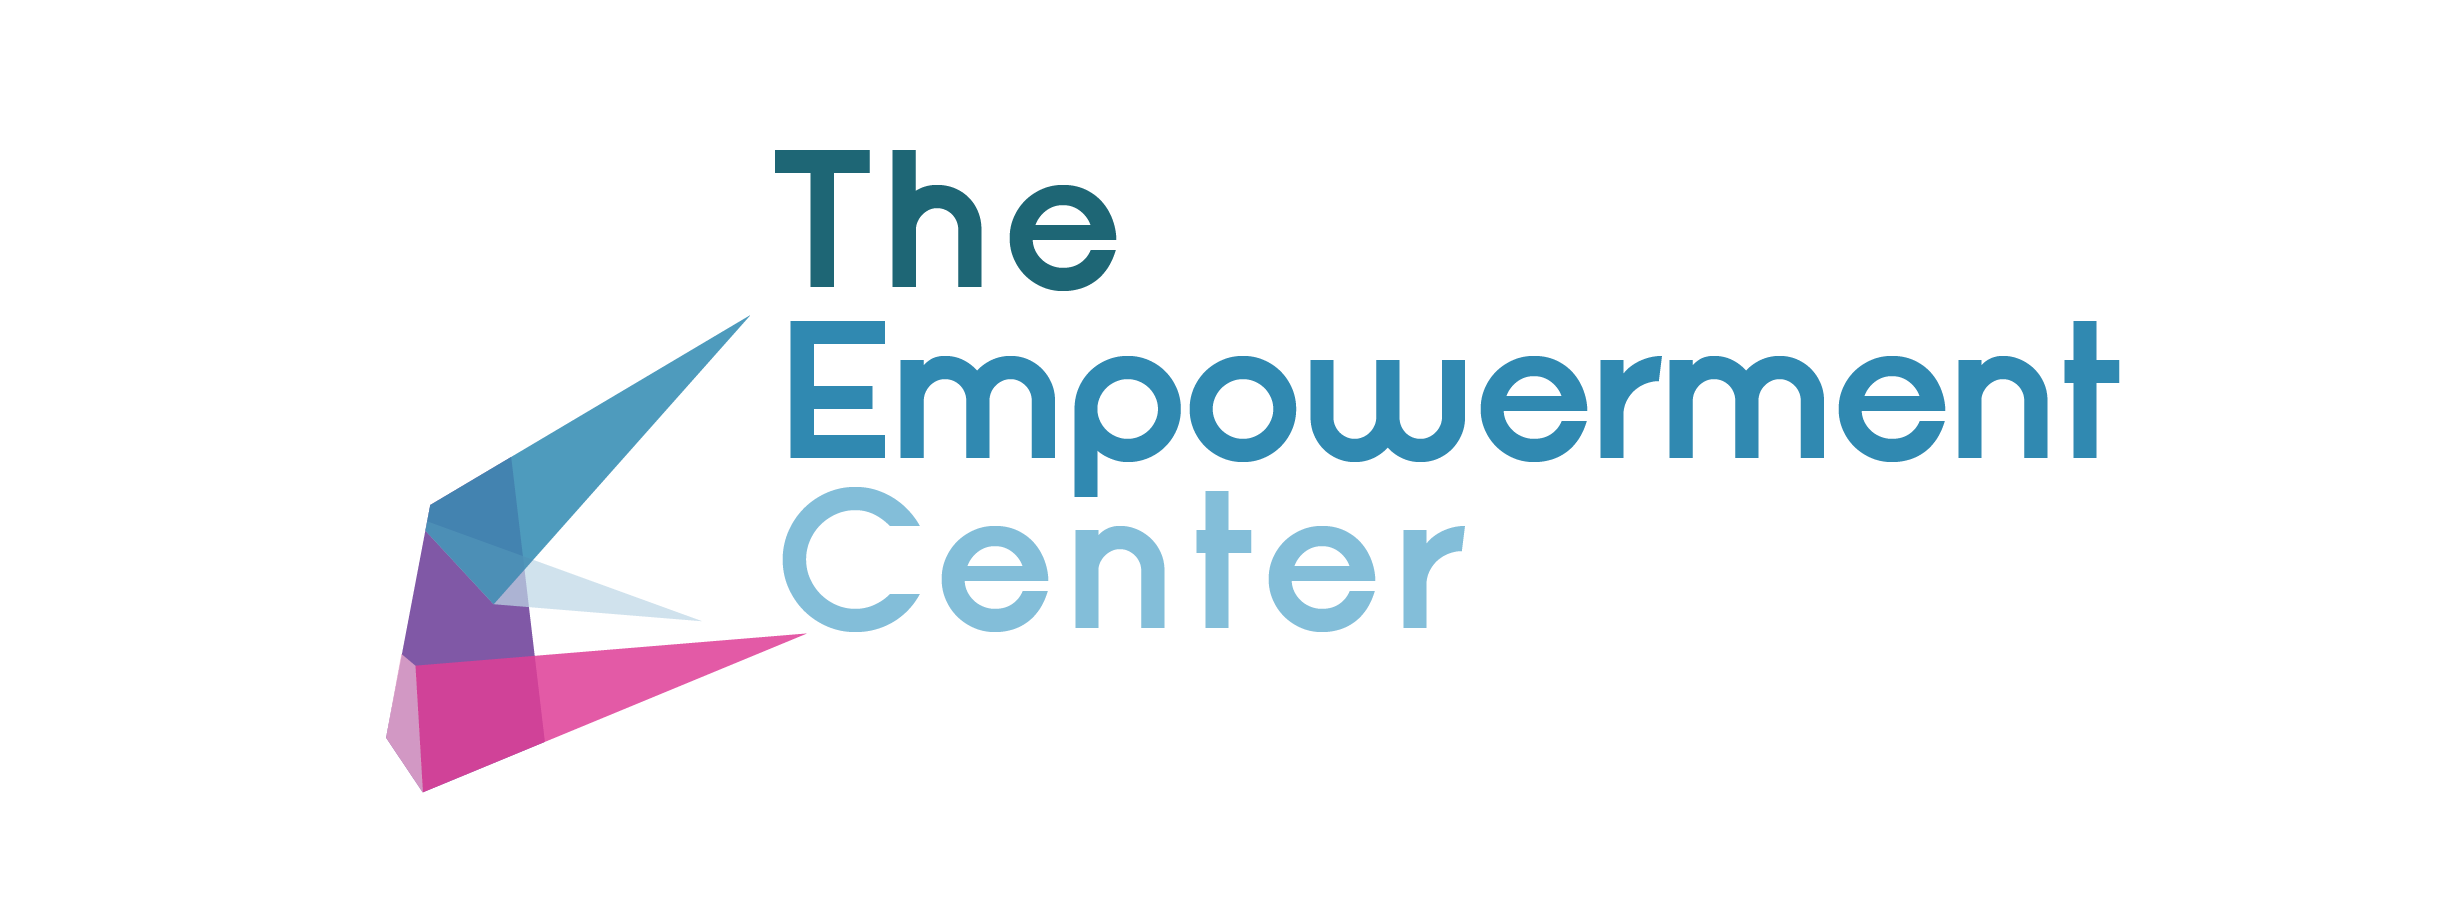 The Empowerment Center